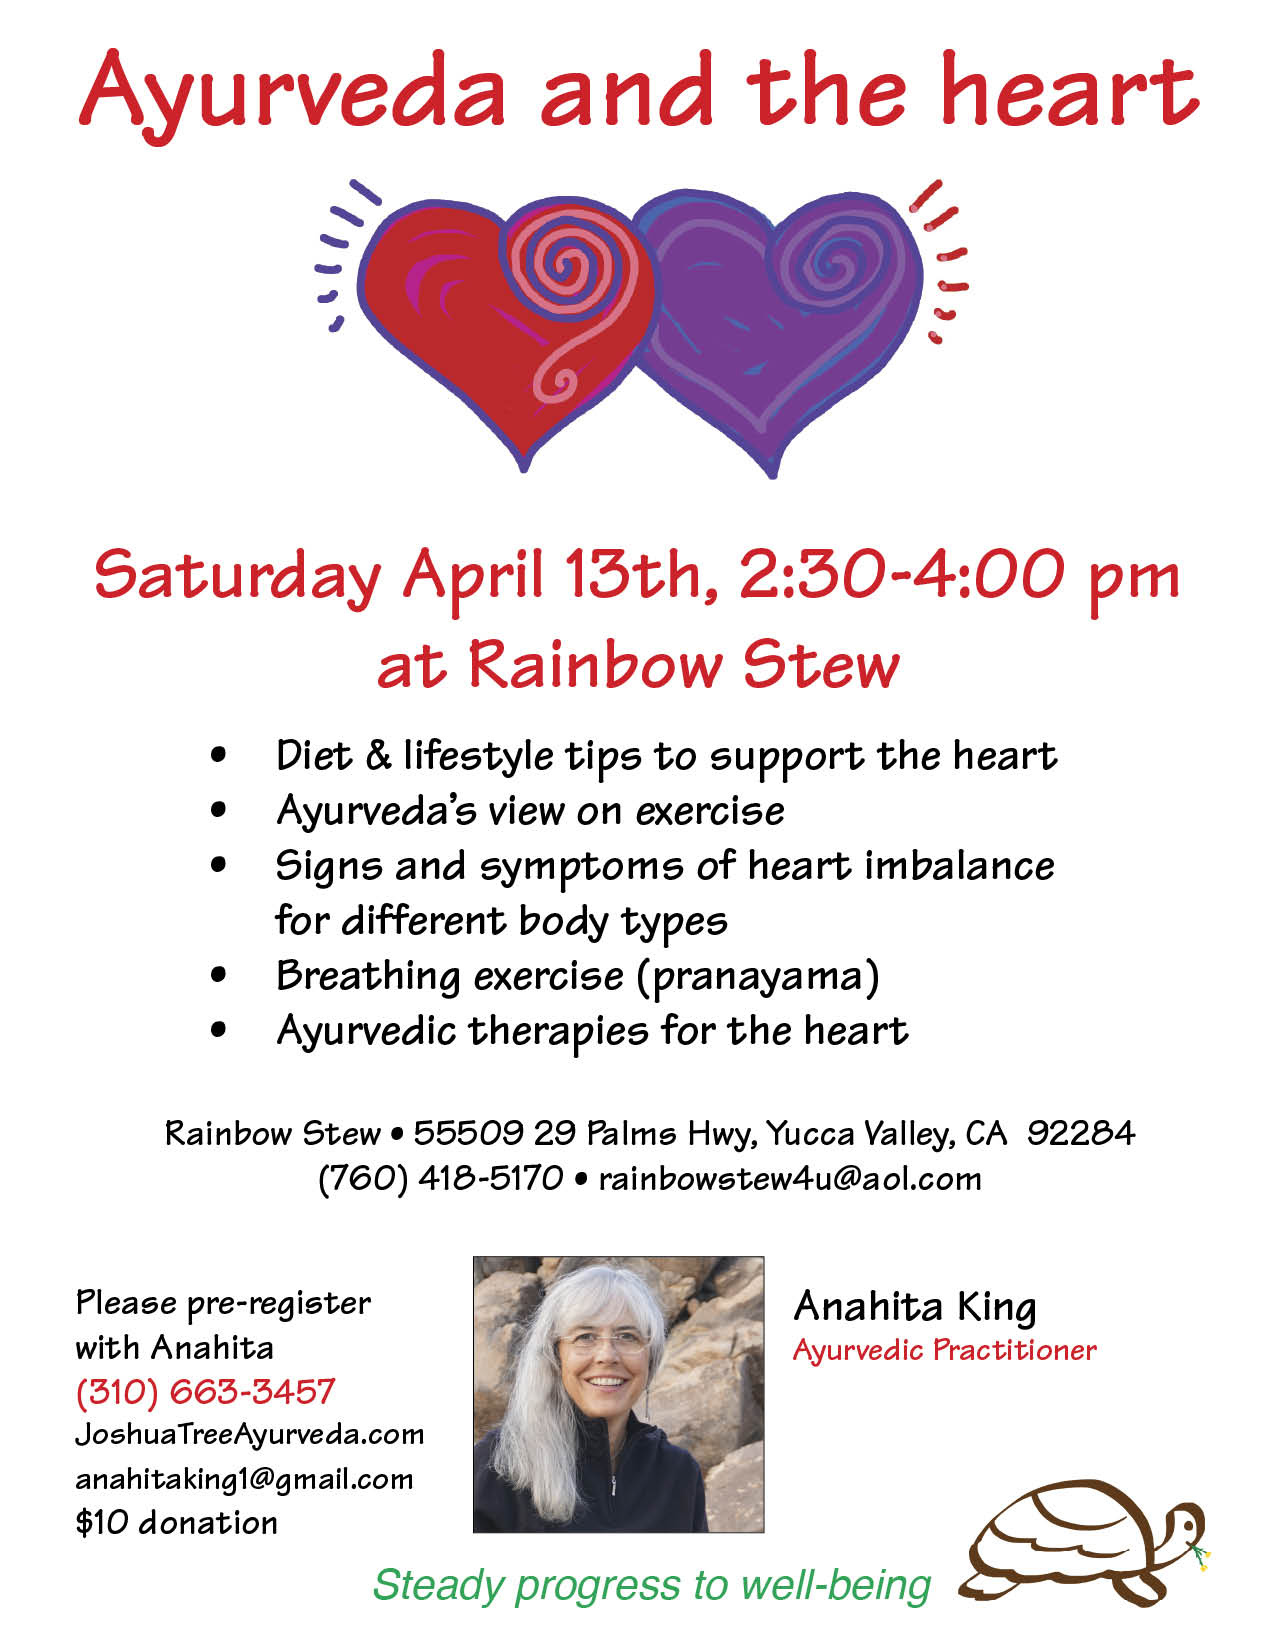 Heart presentation at Rainbow Stew, Yucca Valley